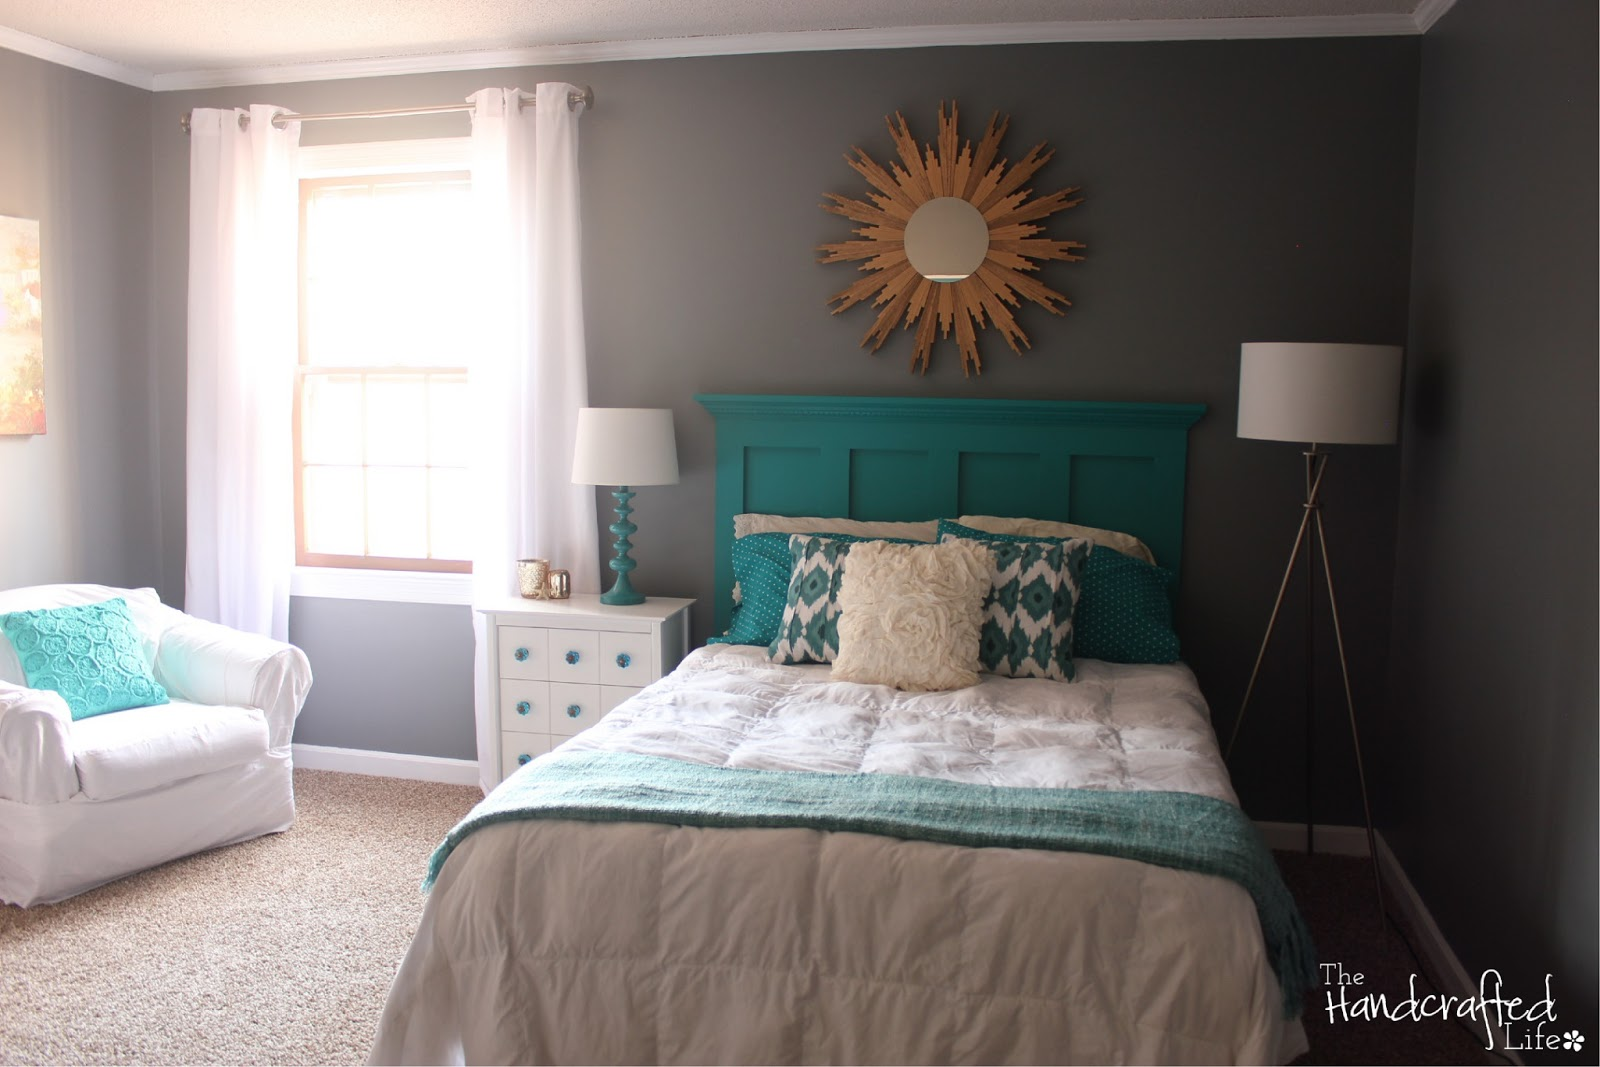 grey teal and yellow bedroom ideas  visi build d, Bedroom decor